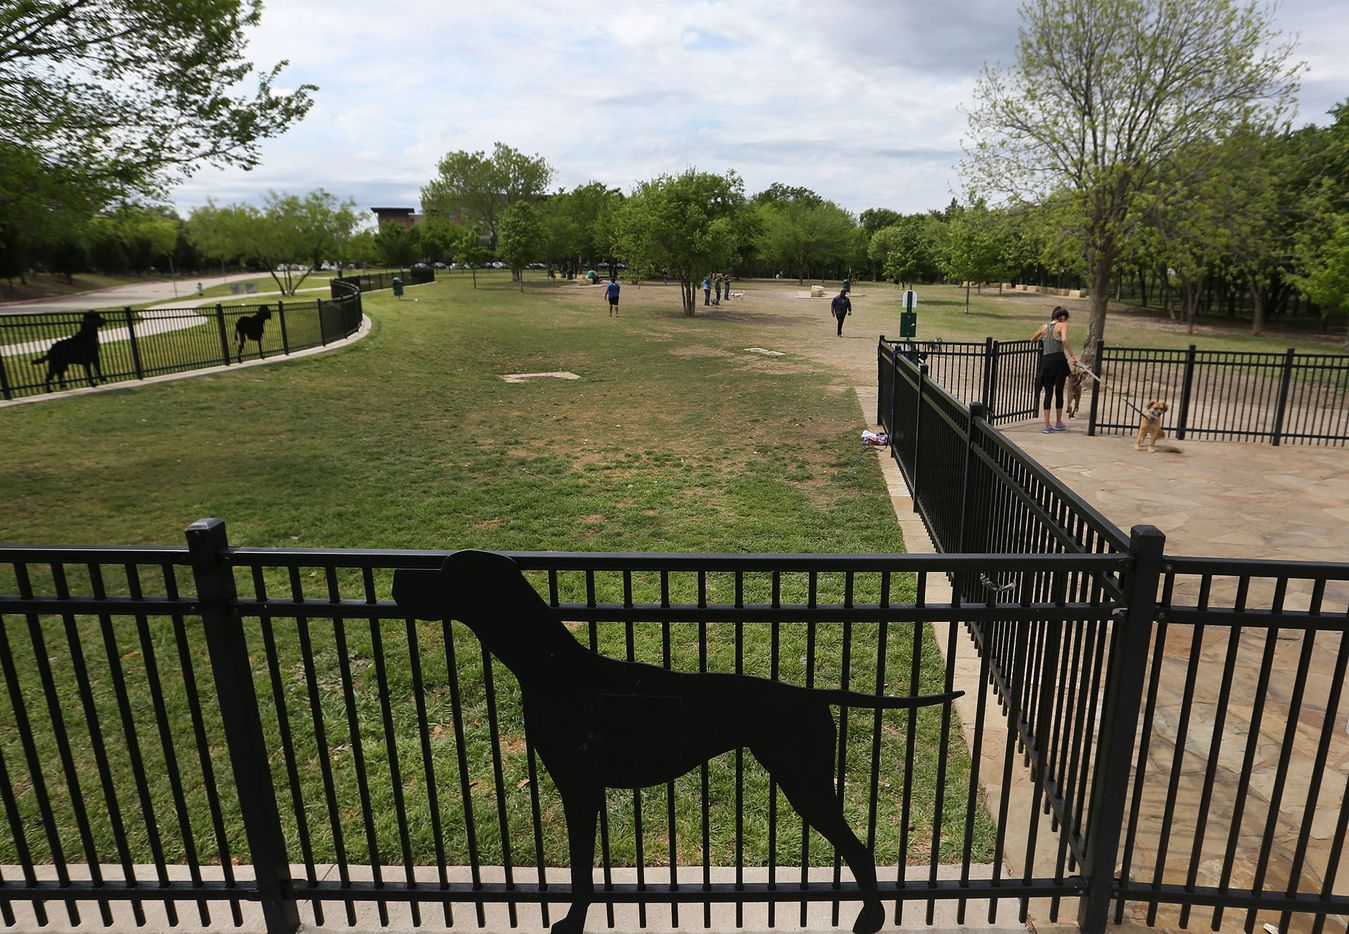 A mild afternoon is the perfect setting for an outing at NorthBark Dog Park, located near the intersection of the Dallas North Tollway and the Bush Toll Road, photographed on Saturday, April 1, 2017.